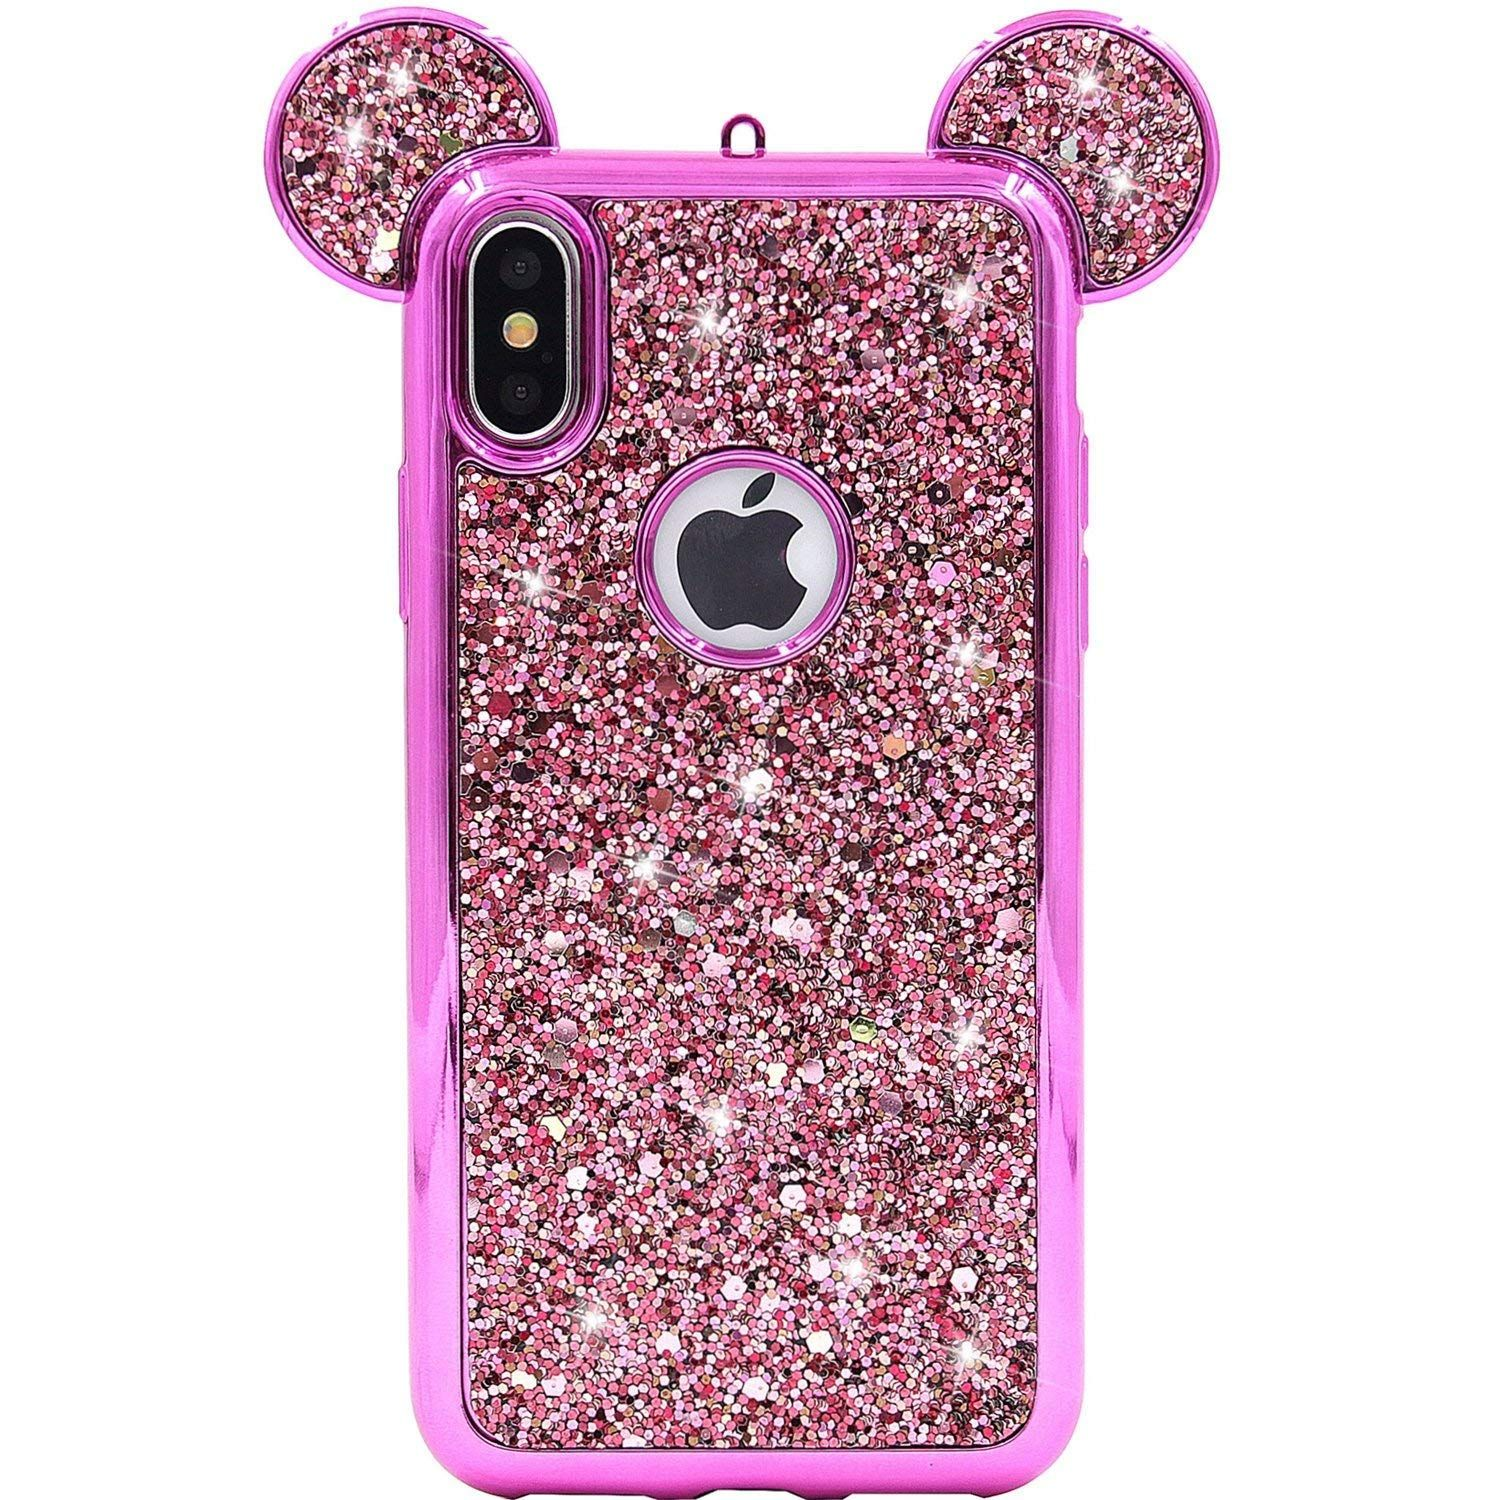 Disney glitter bling minnie mouse ears case iphone 6 7 8